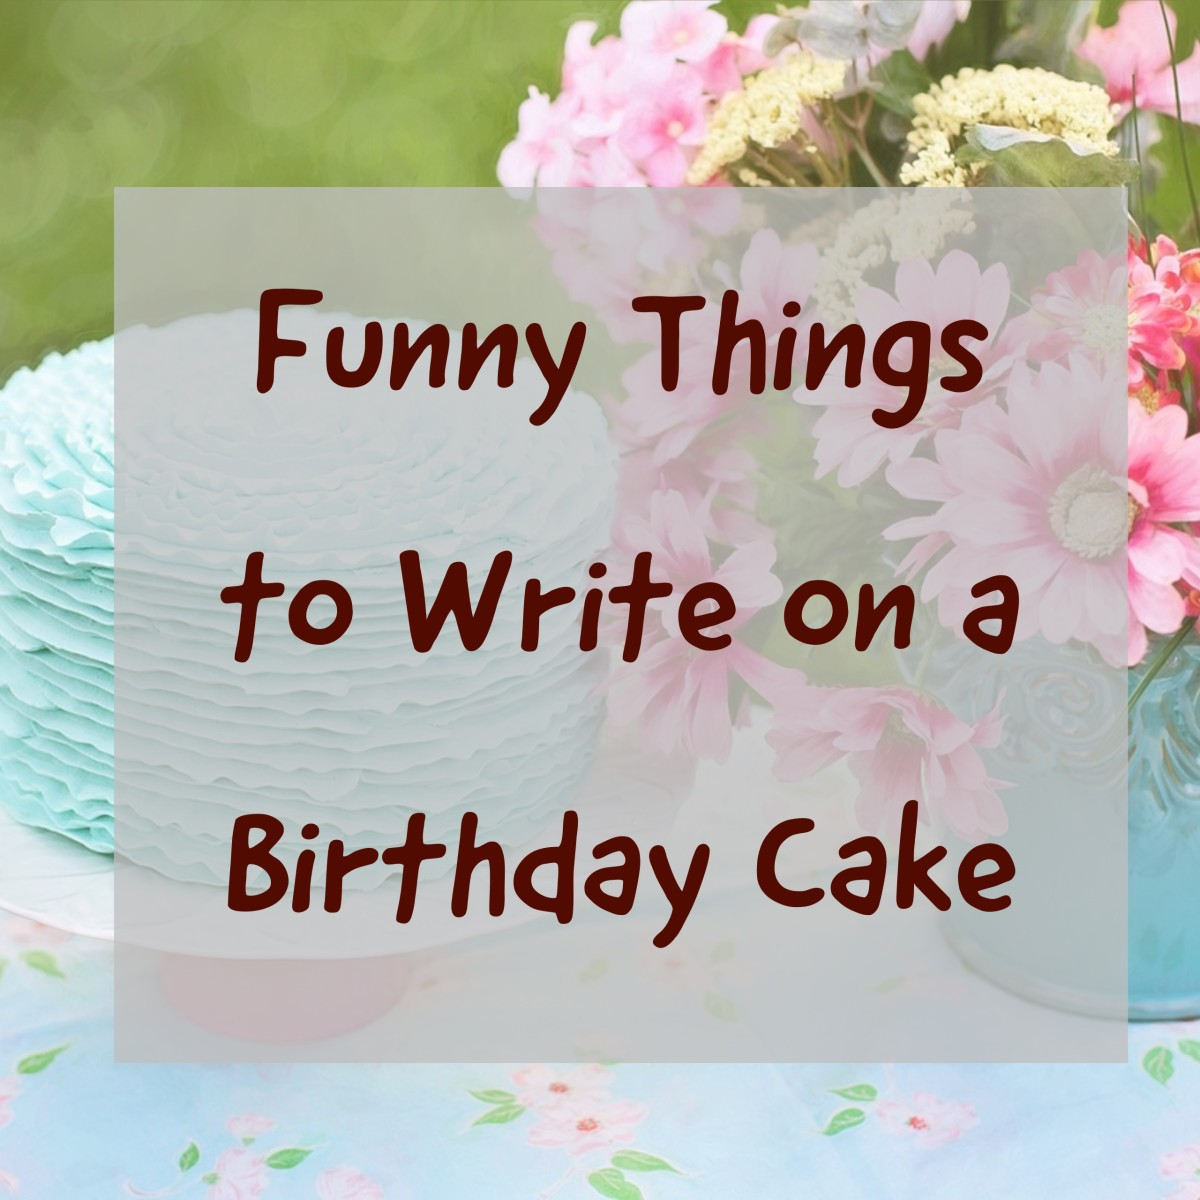 Magnificent Over 100 Funny Things To Write On A Birthday Cake Holidappy Personalised Birthday Cards Petedlily Jamesorg